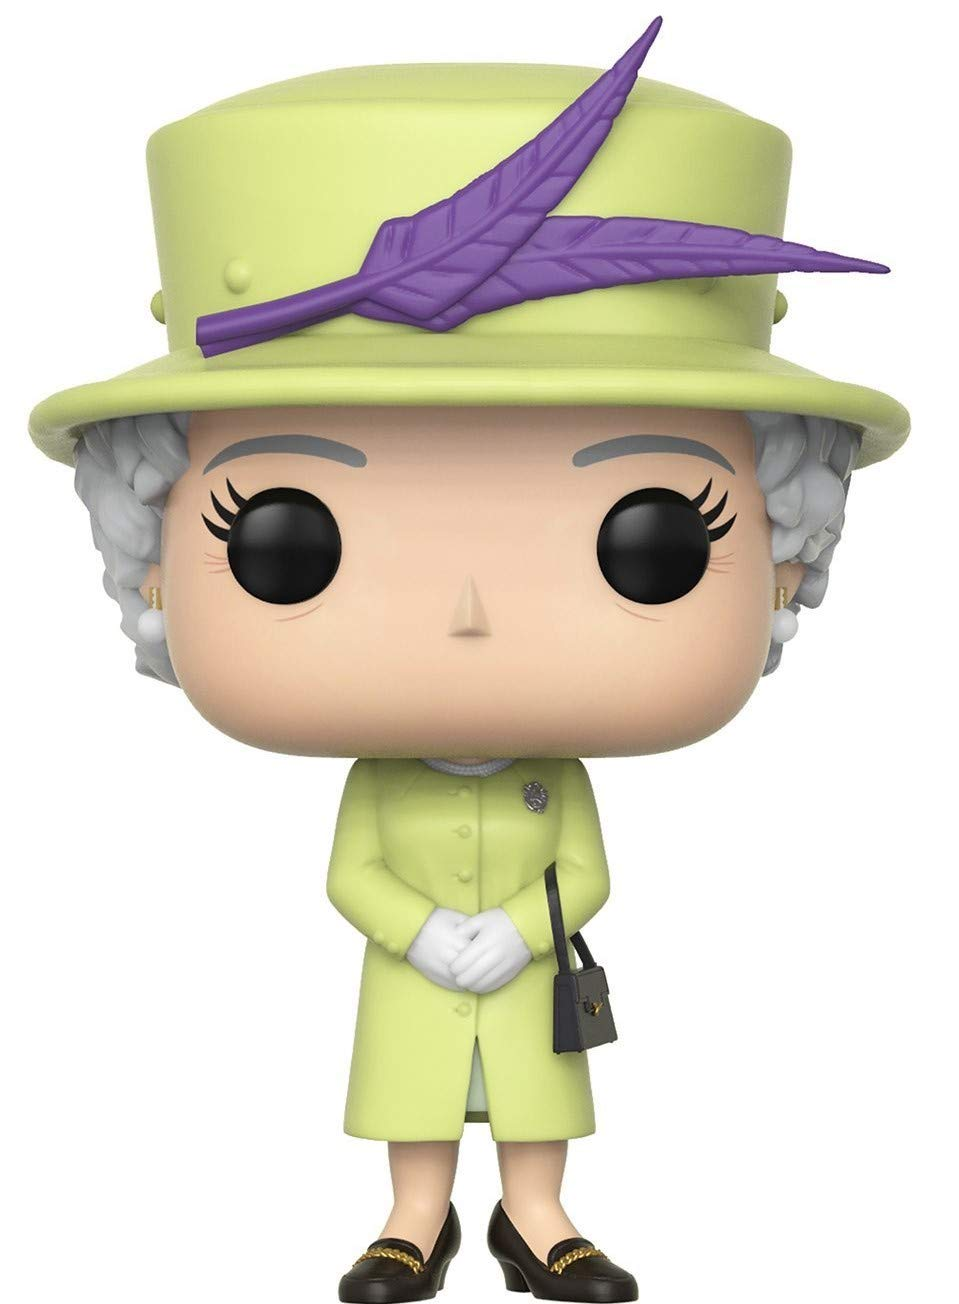 Funko Pop Bundled with Pop Box Protector Case Green Outfit Vinyl Figure Queen Elizabeth II Royals: The Royal Family